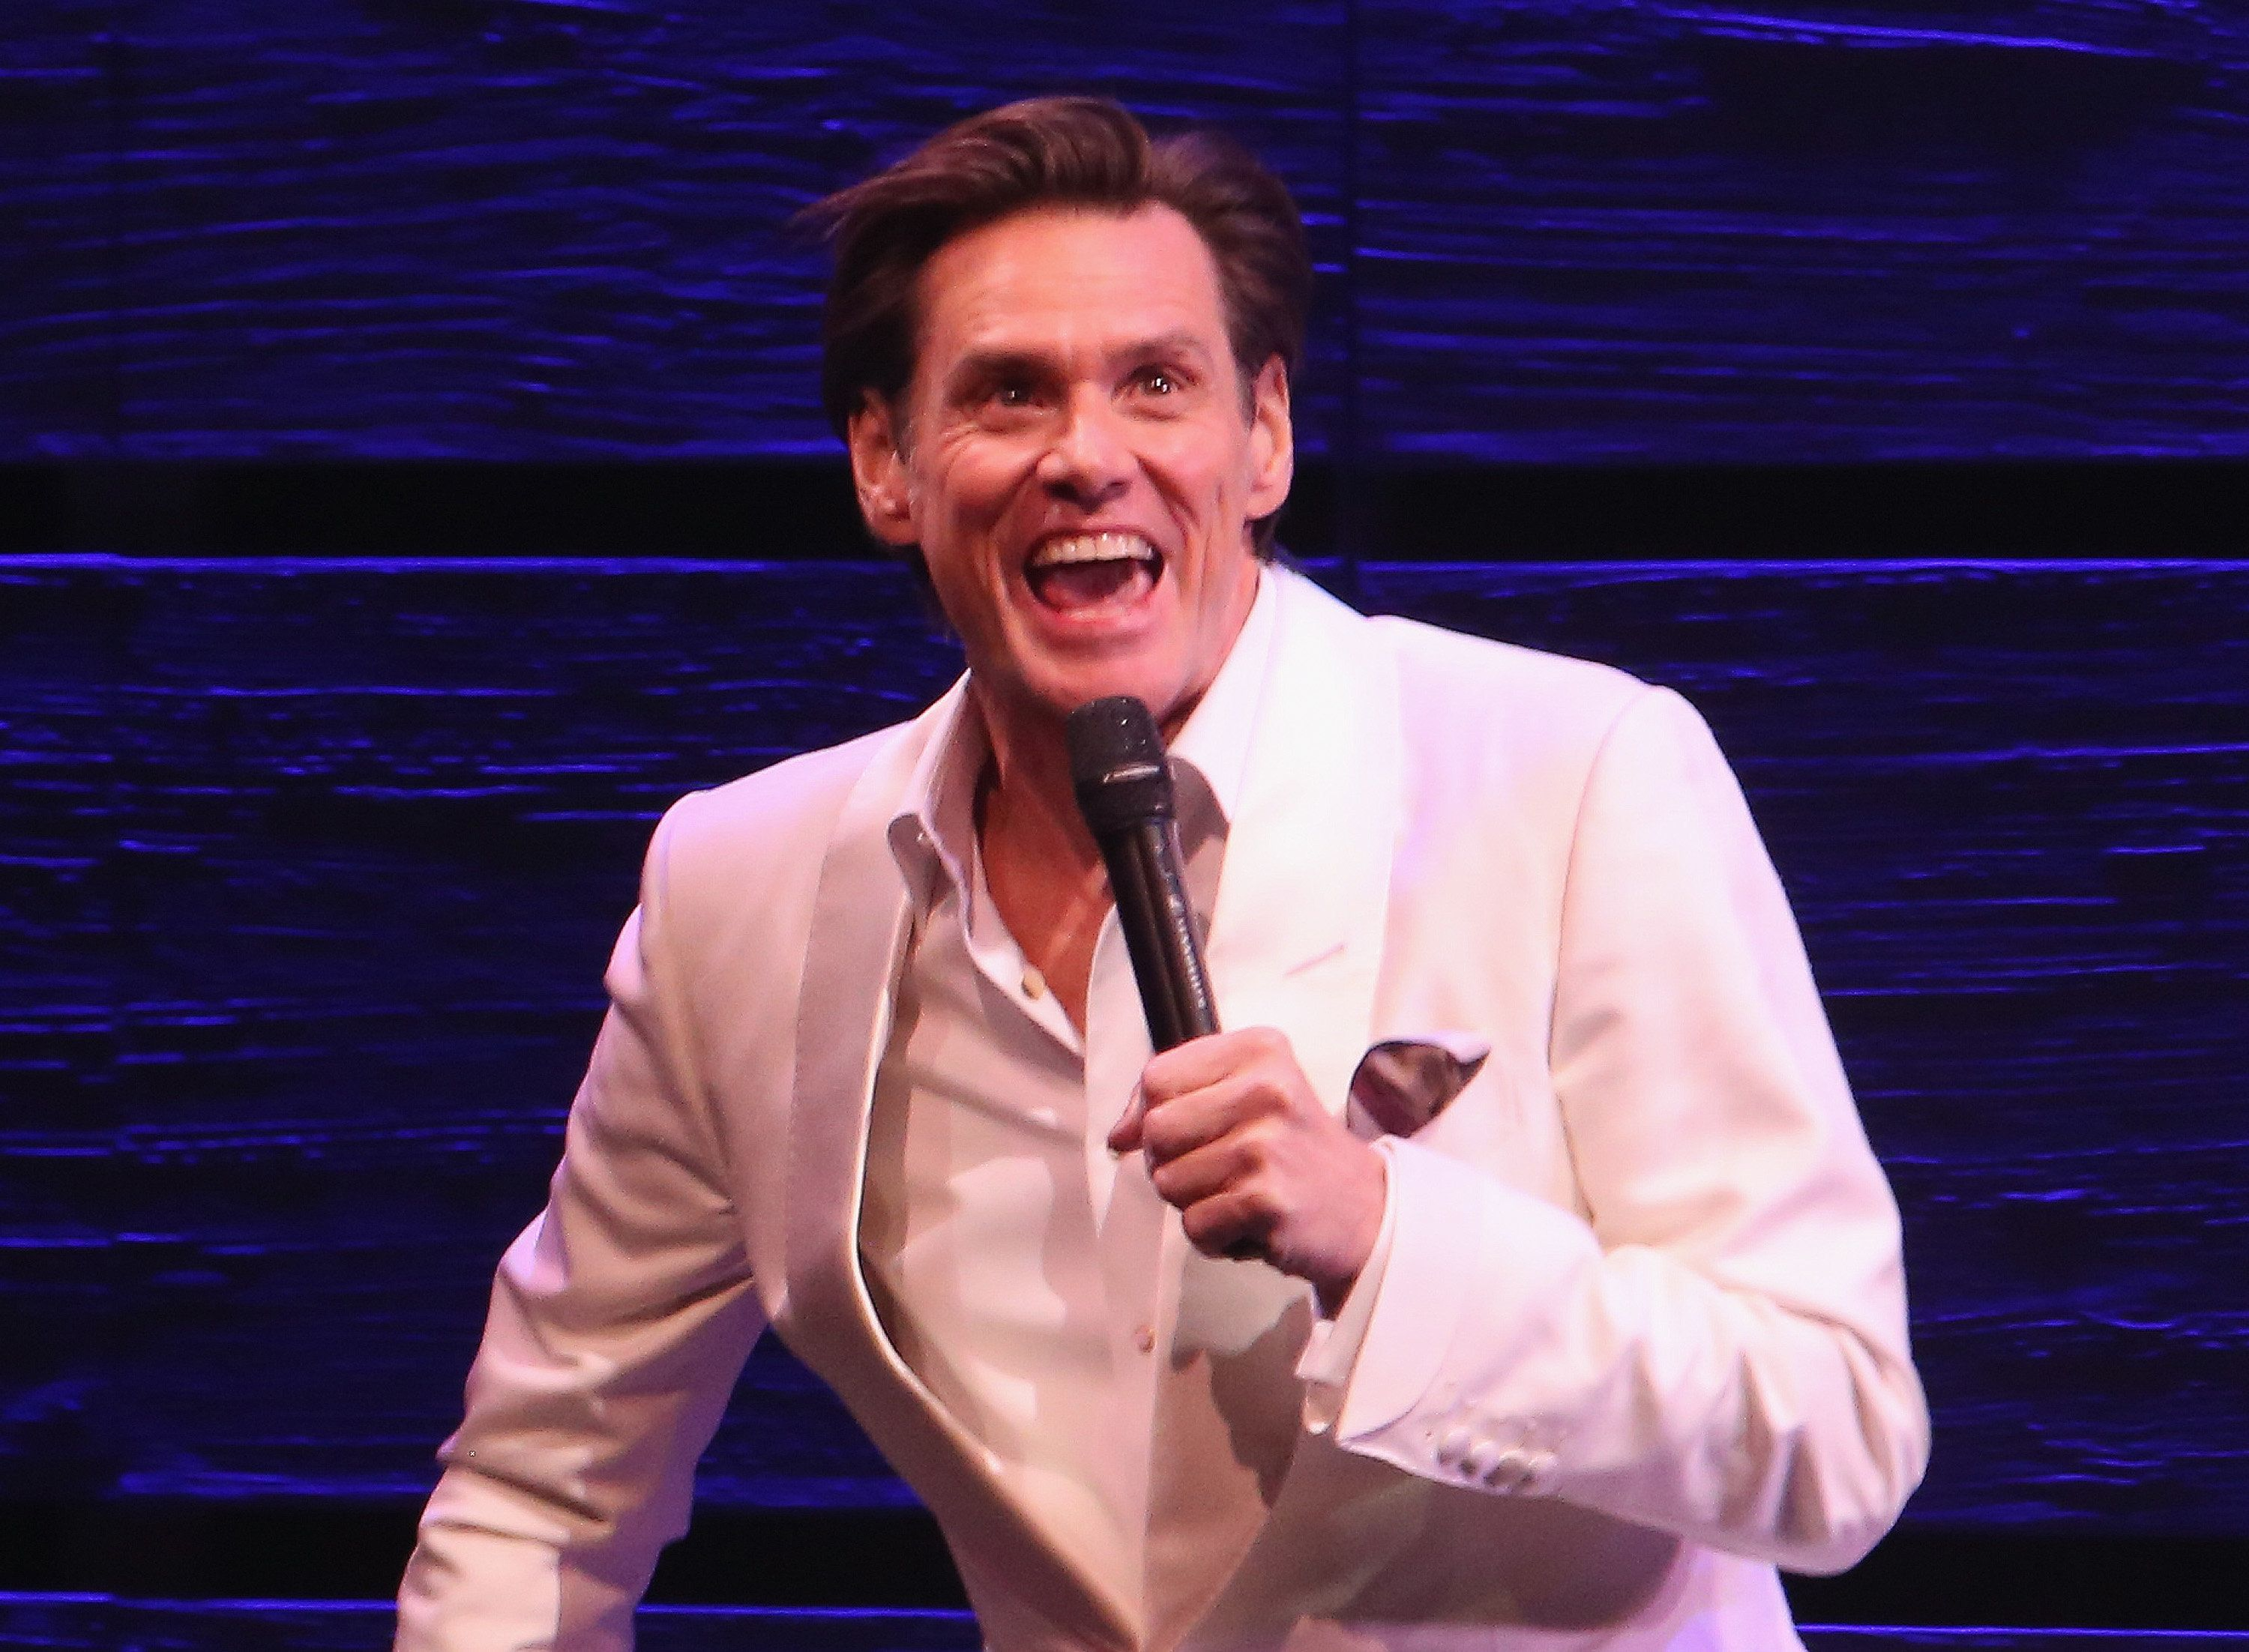 NEW YORK, NY - SEPTEMBER 07:  (EXCLUSIVE COVERAGE) Jim Carrey guest stars and makes his broadway debut in 'Michael Moore's play 'The Terms of My Surrender' on Broadway at The Belasco Theatre on September 7, 2017 in New York City.  (Photo by Bruce Glikas/Bruce Glikas/FilmMagic)